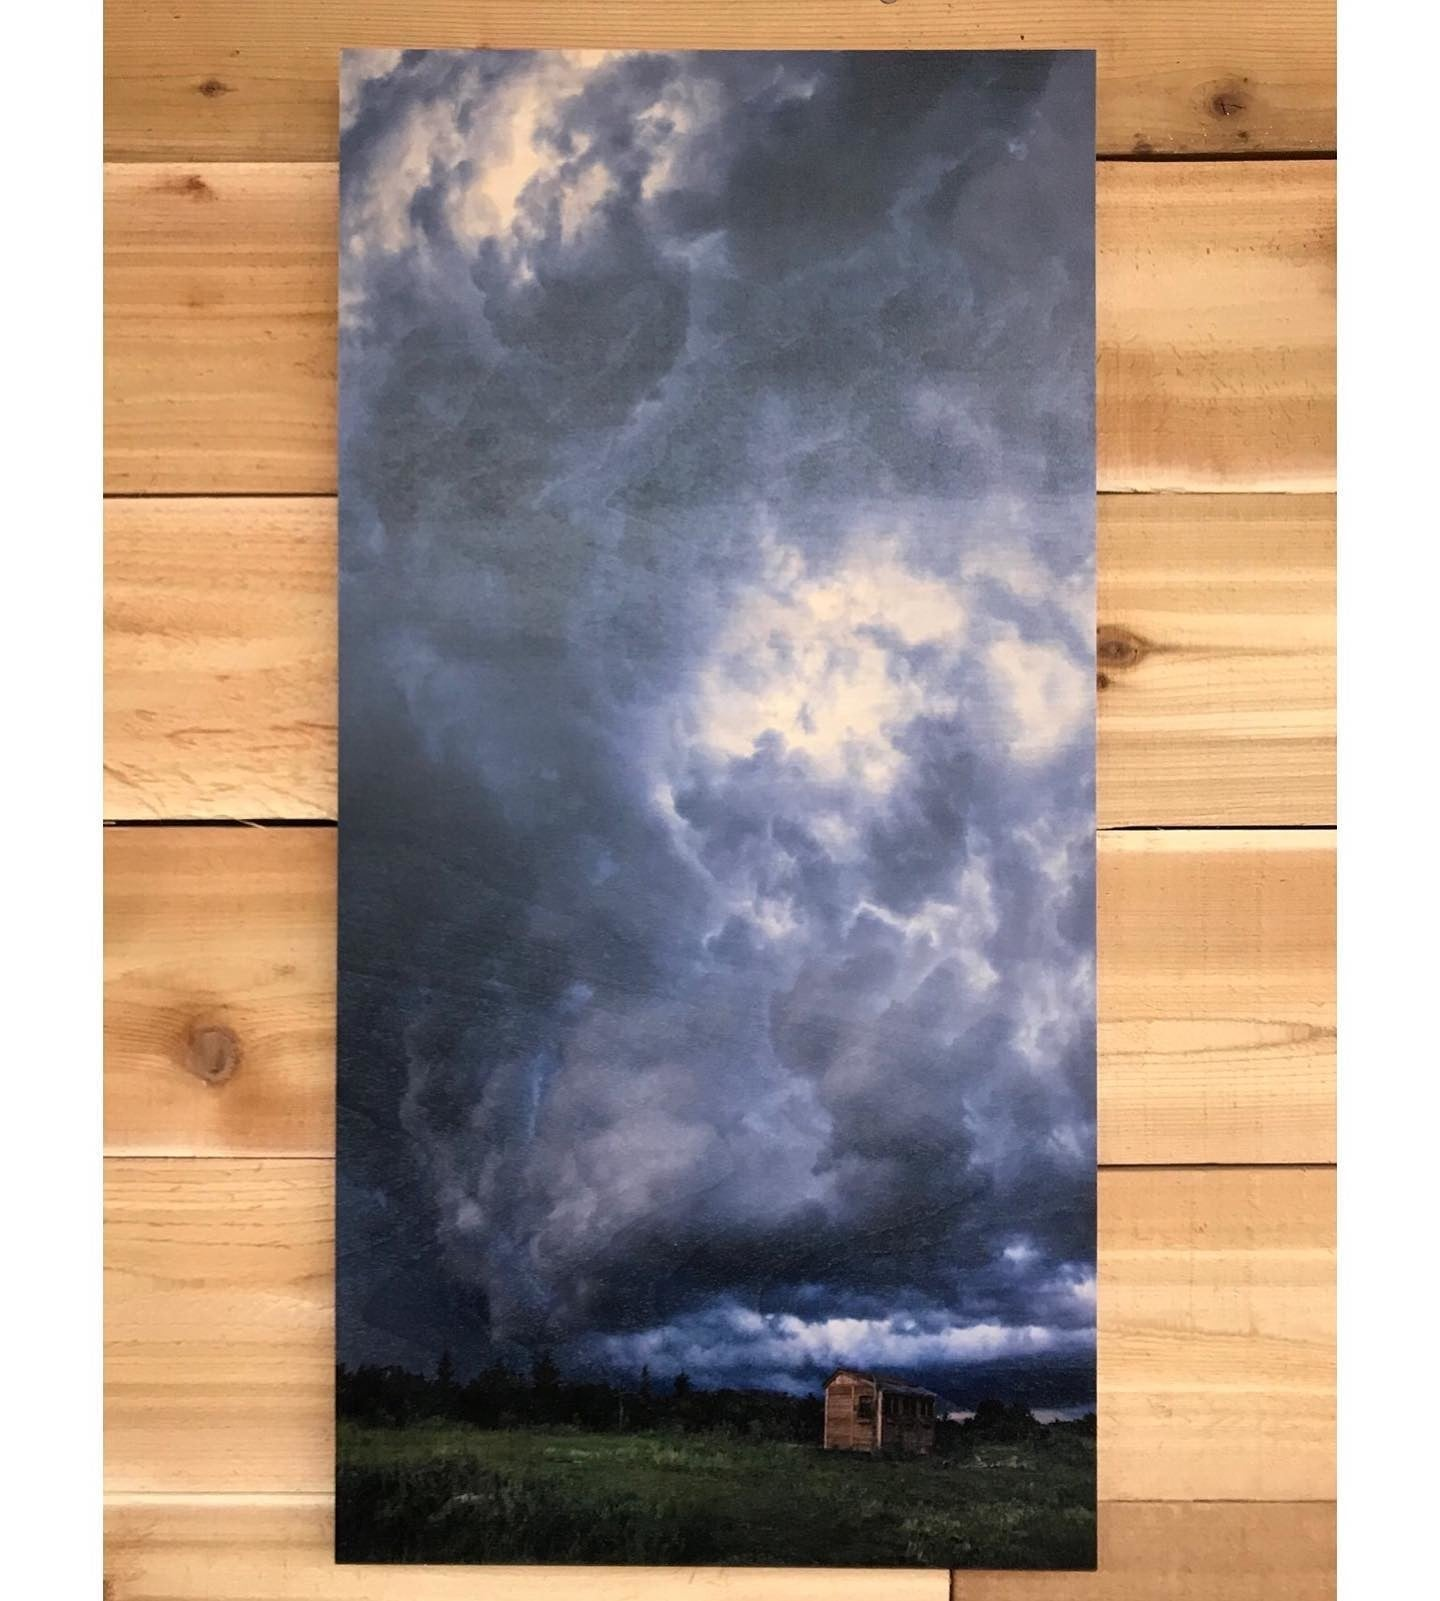 Vertical Panoramic Photo Printed on Wood at Posterjack